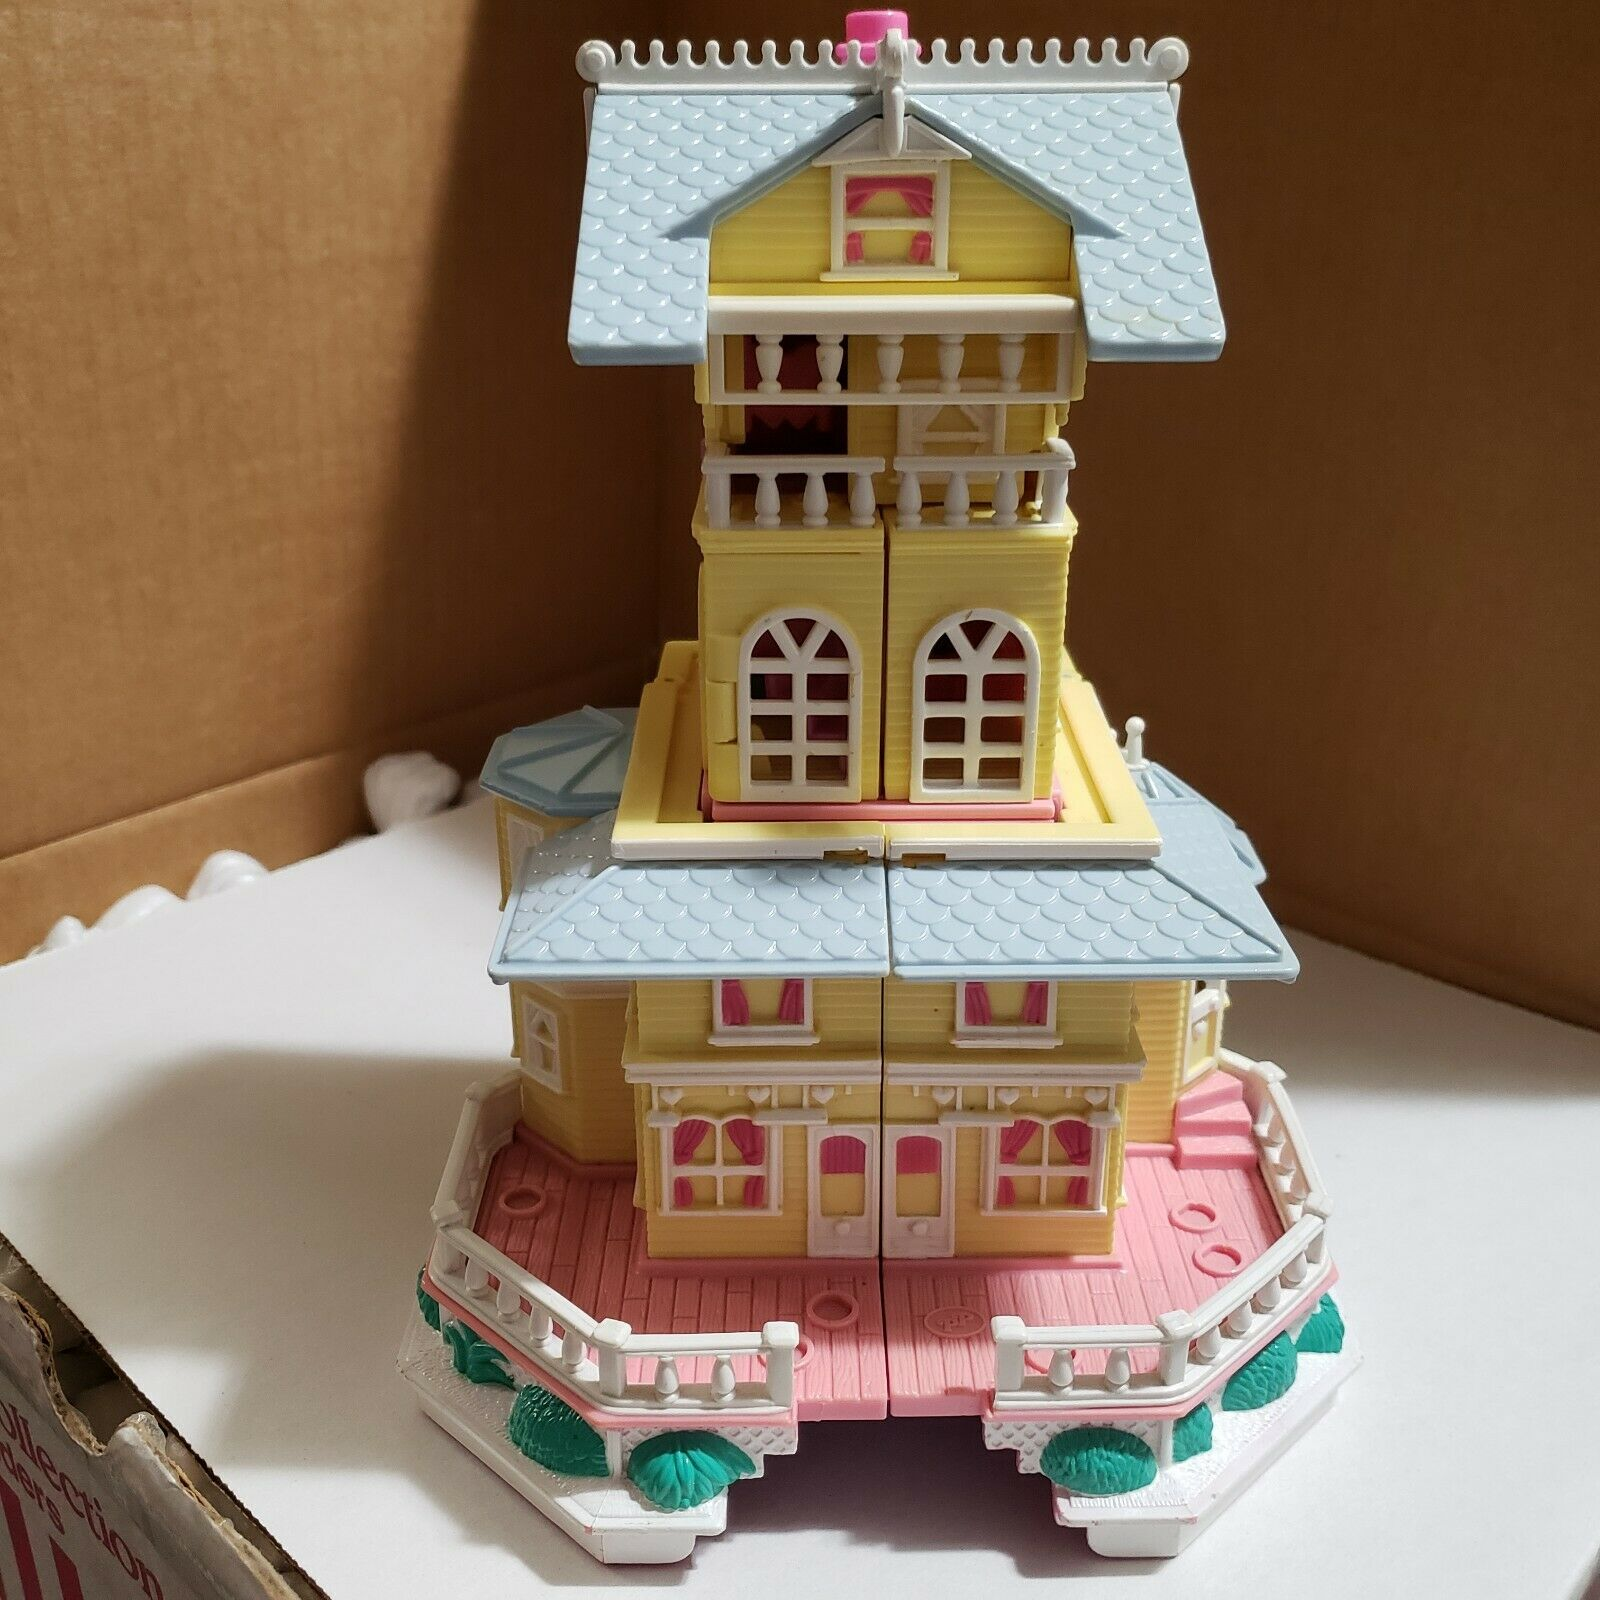 Blaubird Polly Pocket Clubhouse Pollyville Mansion Gelb Vintage